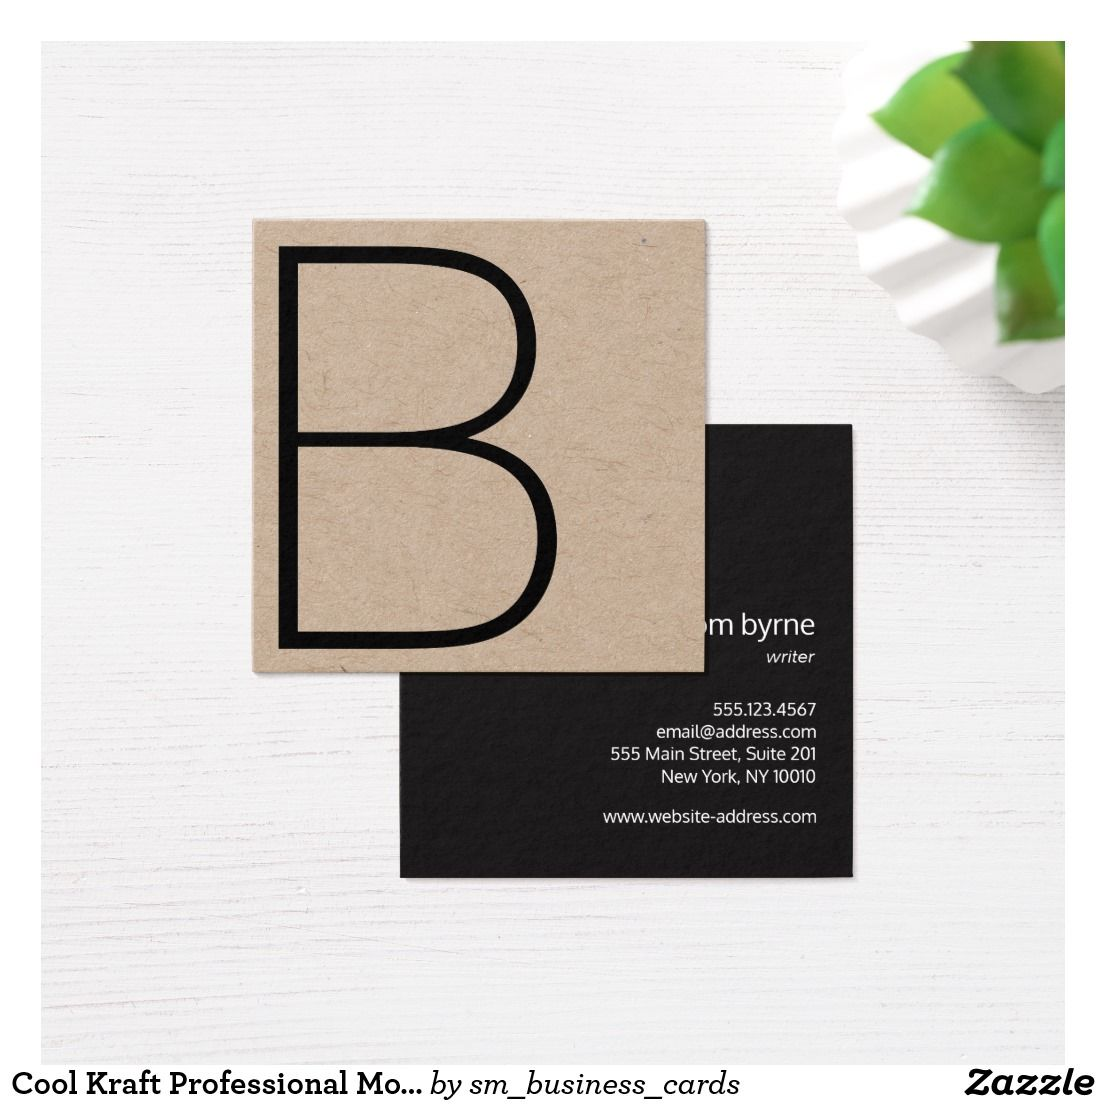 Cool Kraft Professional Monogram Square Square Business Card ...